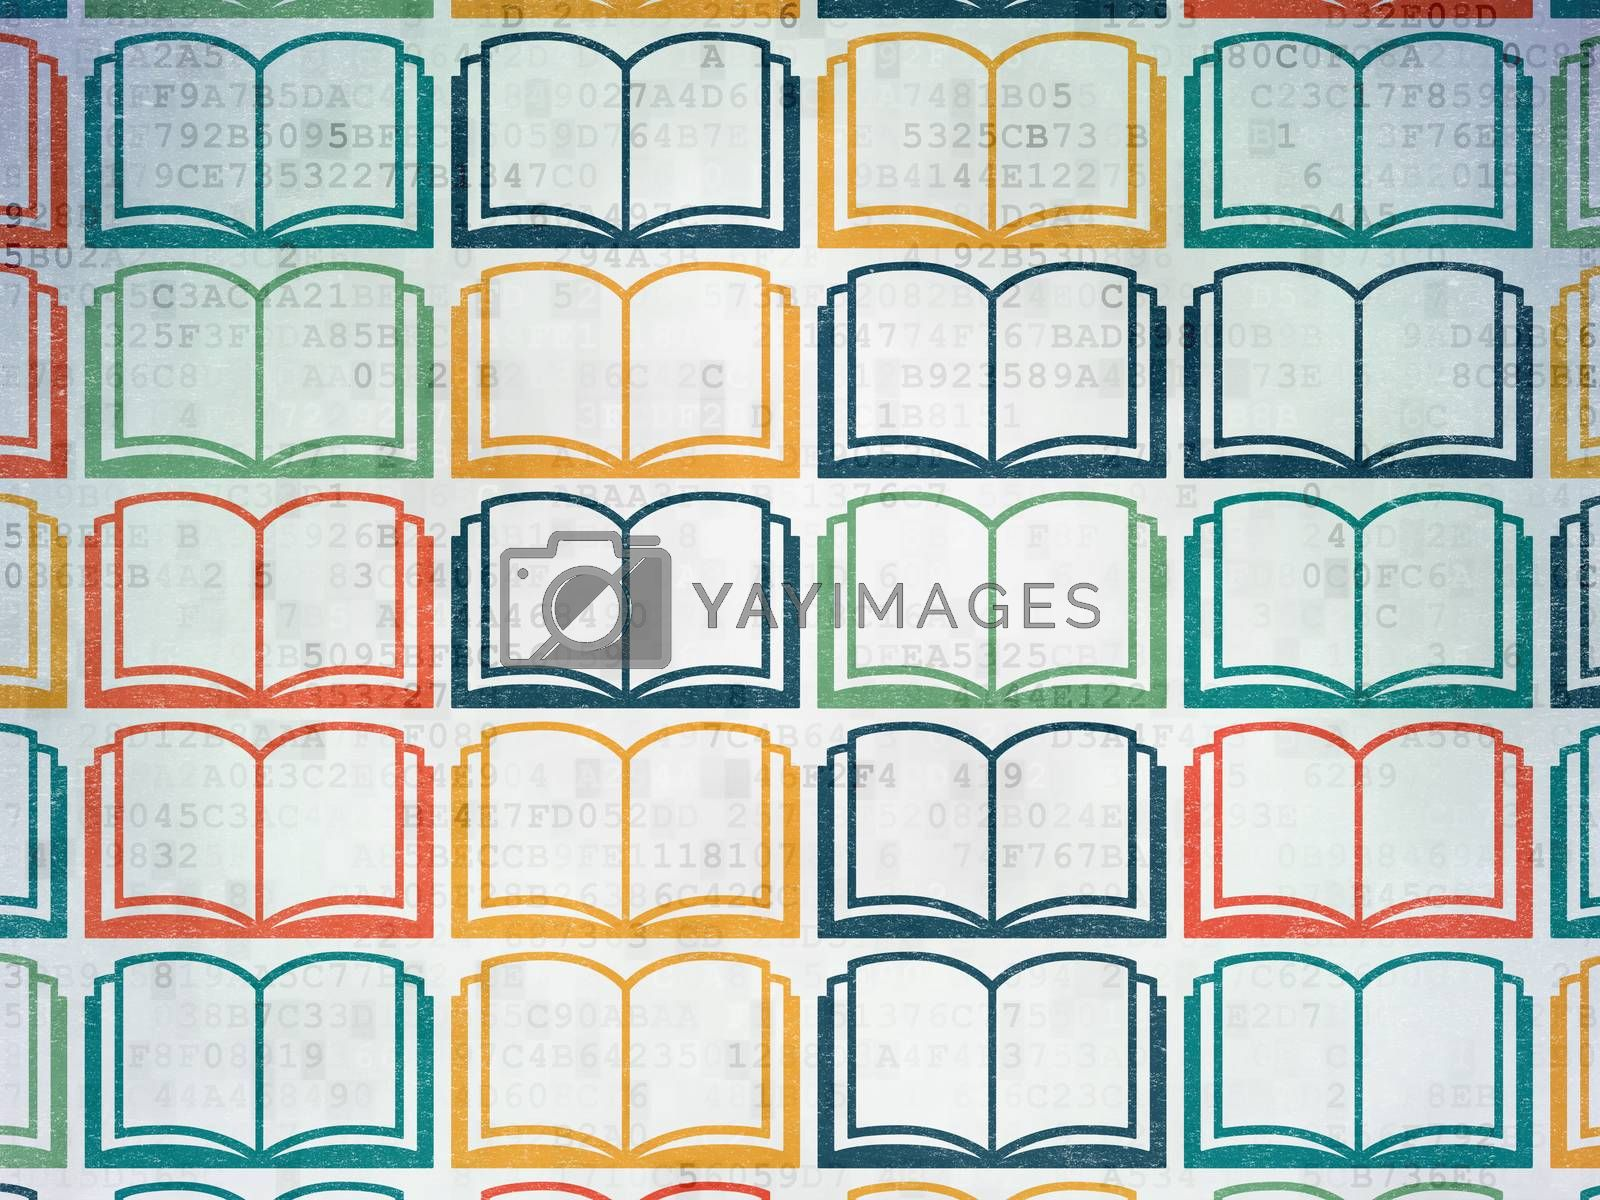 Studying concept: Book icons on Digital Paper background by maxkabakov